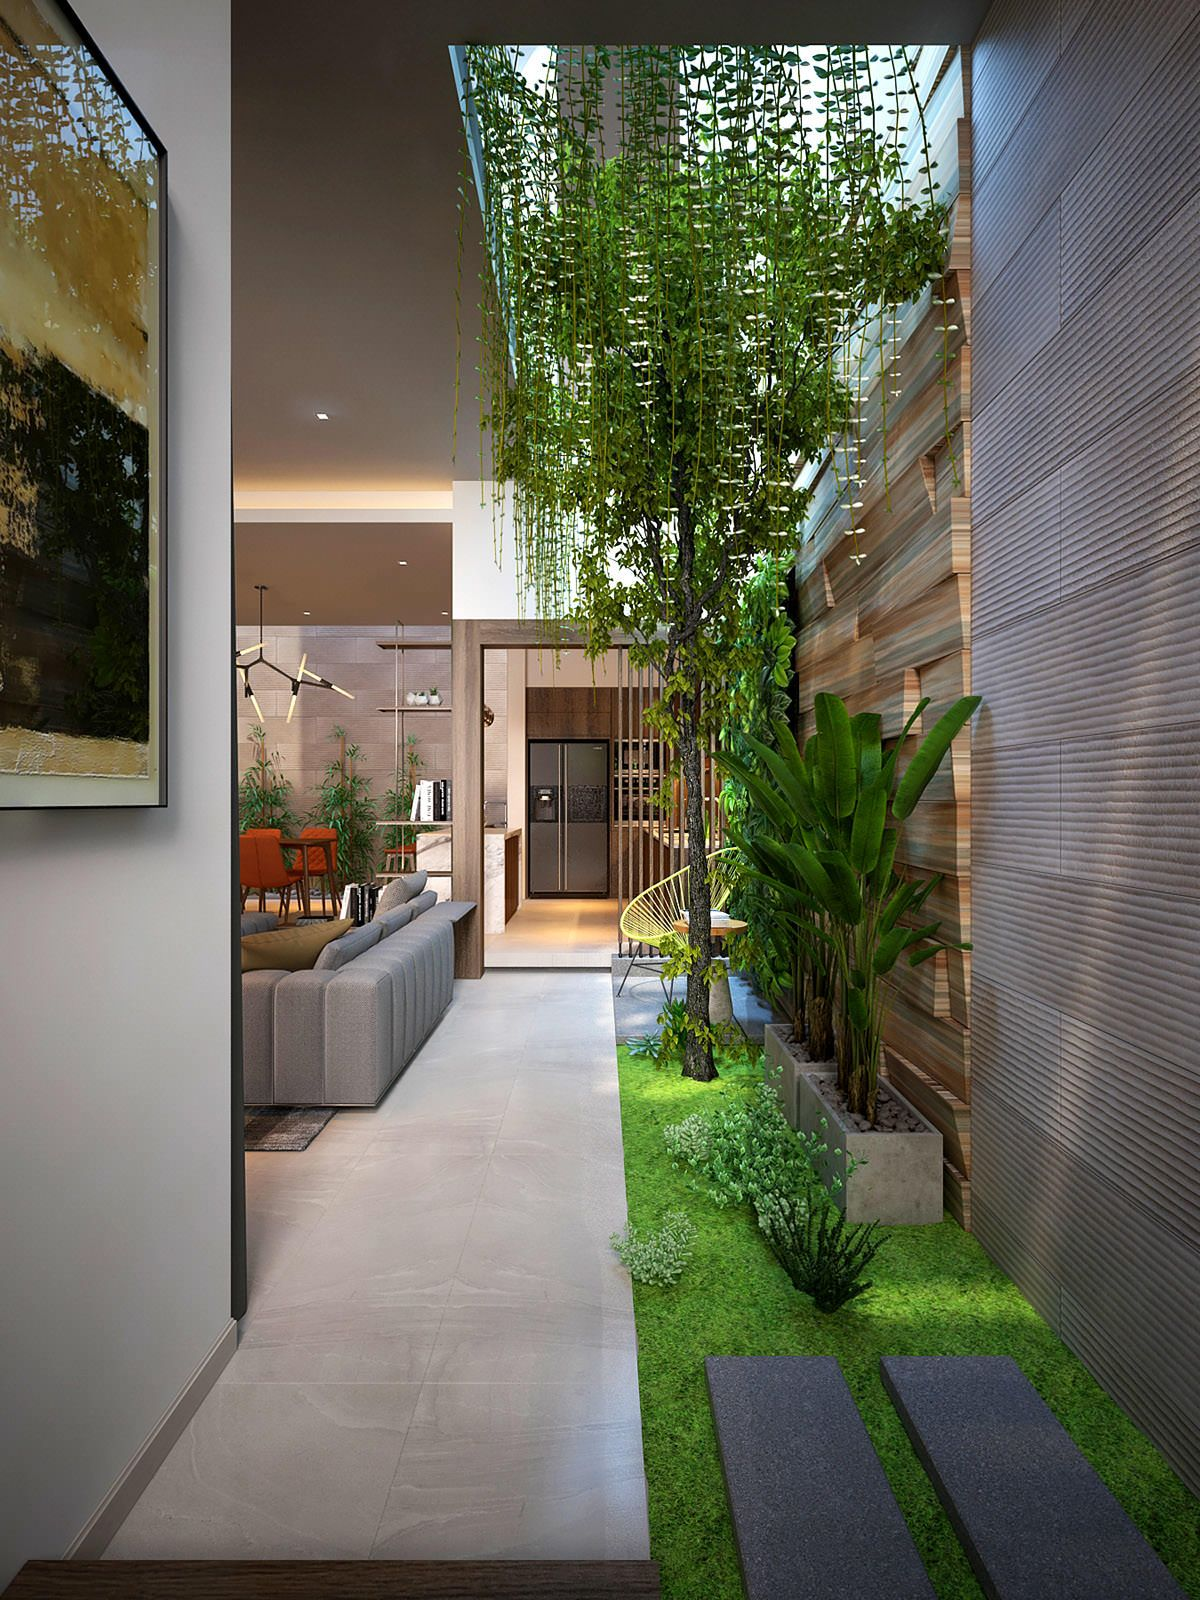 4 Homes That Feature Green Spaces Inside, With Courtyards